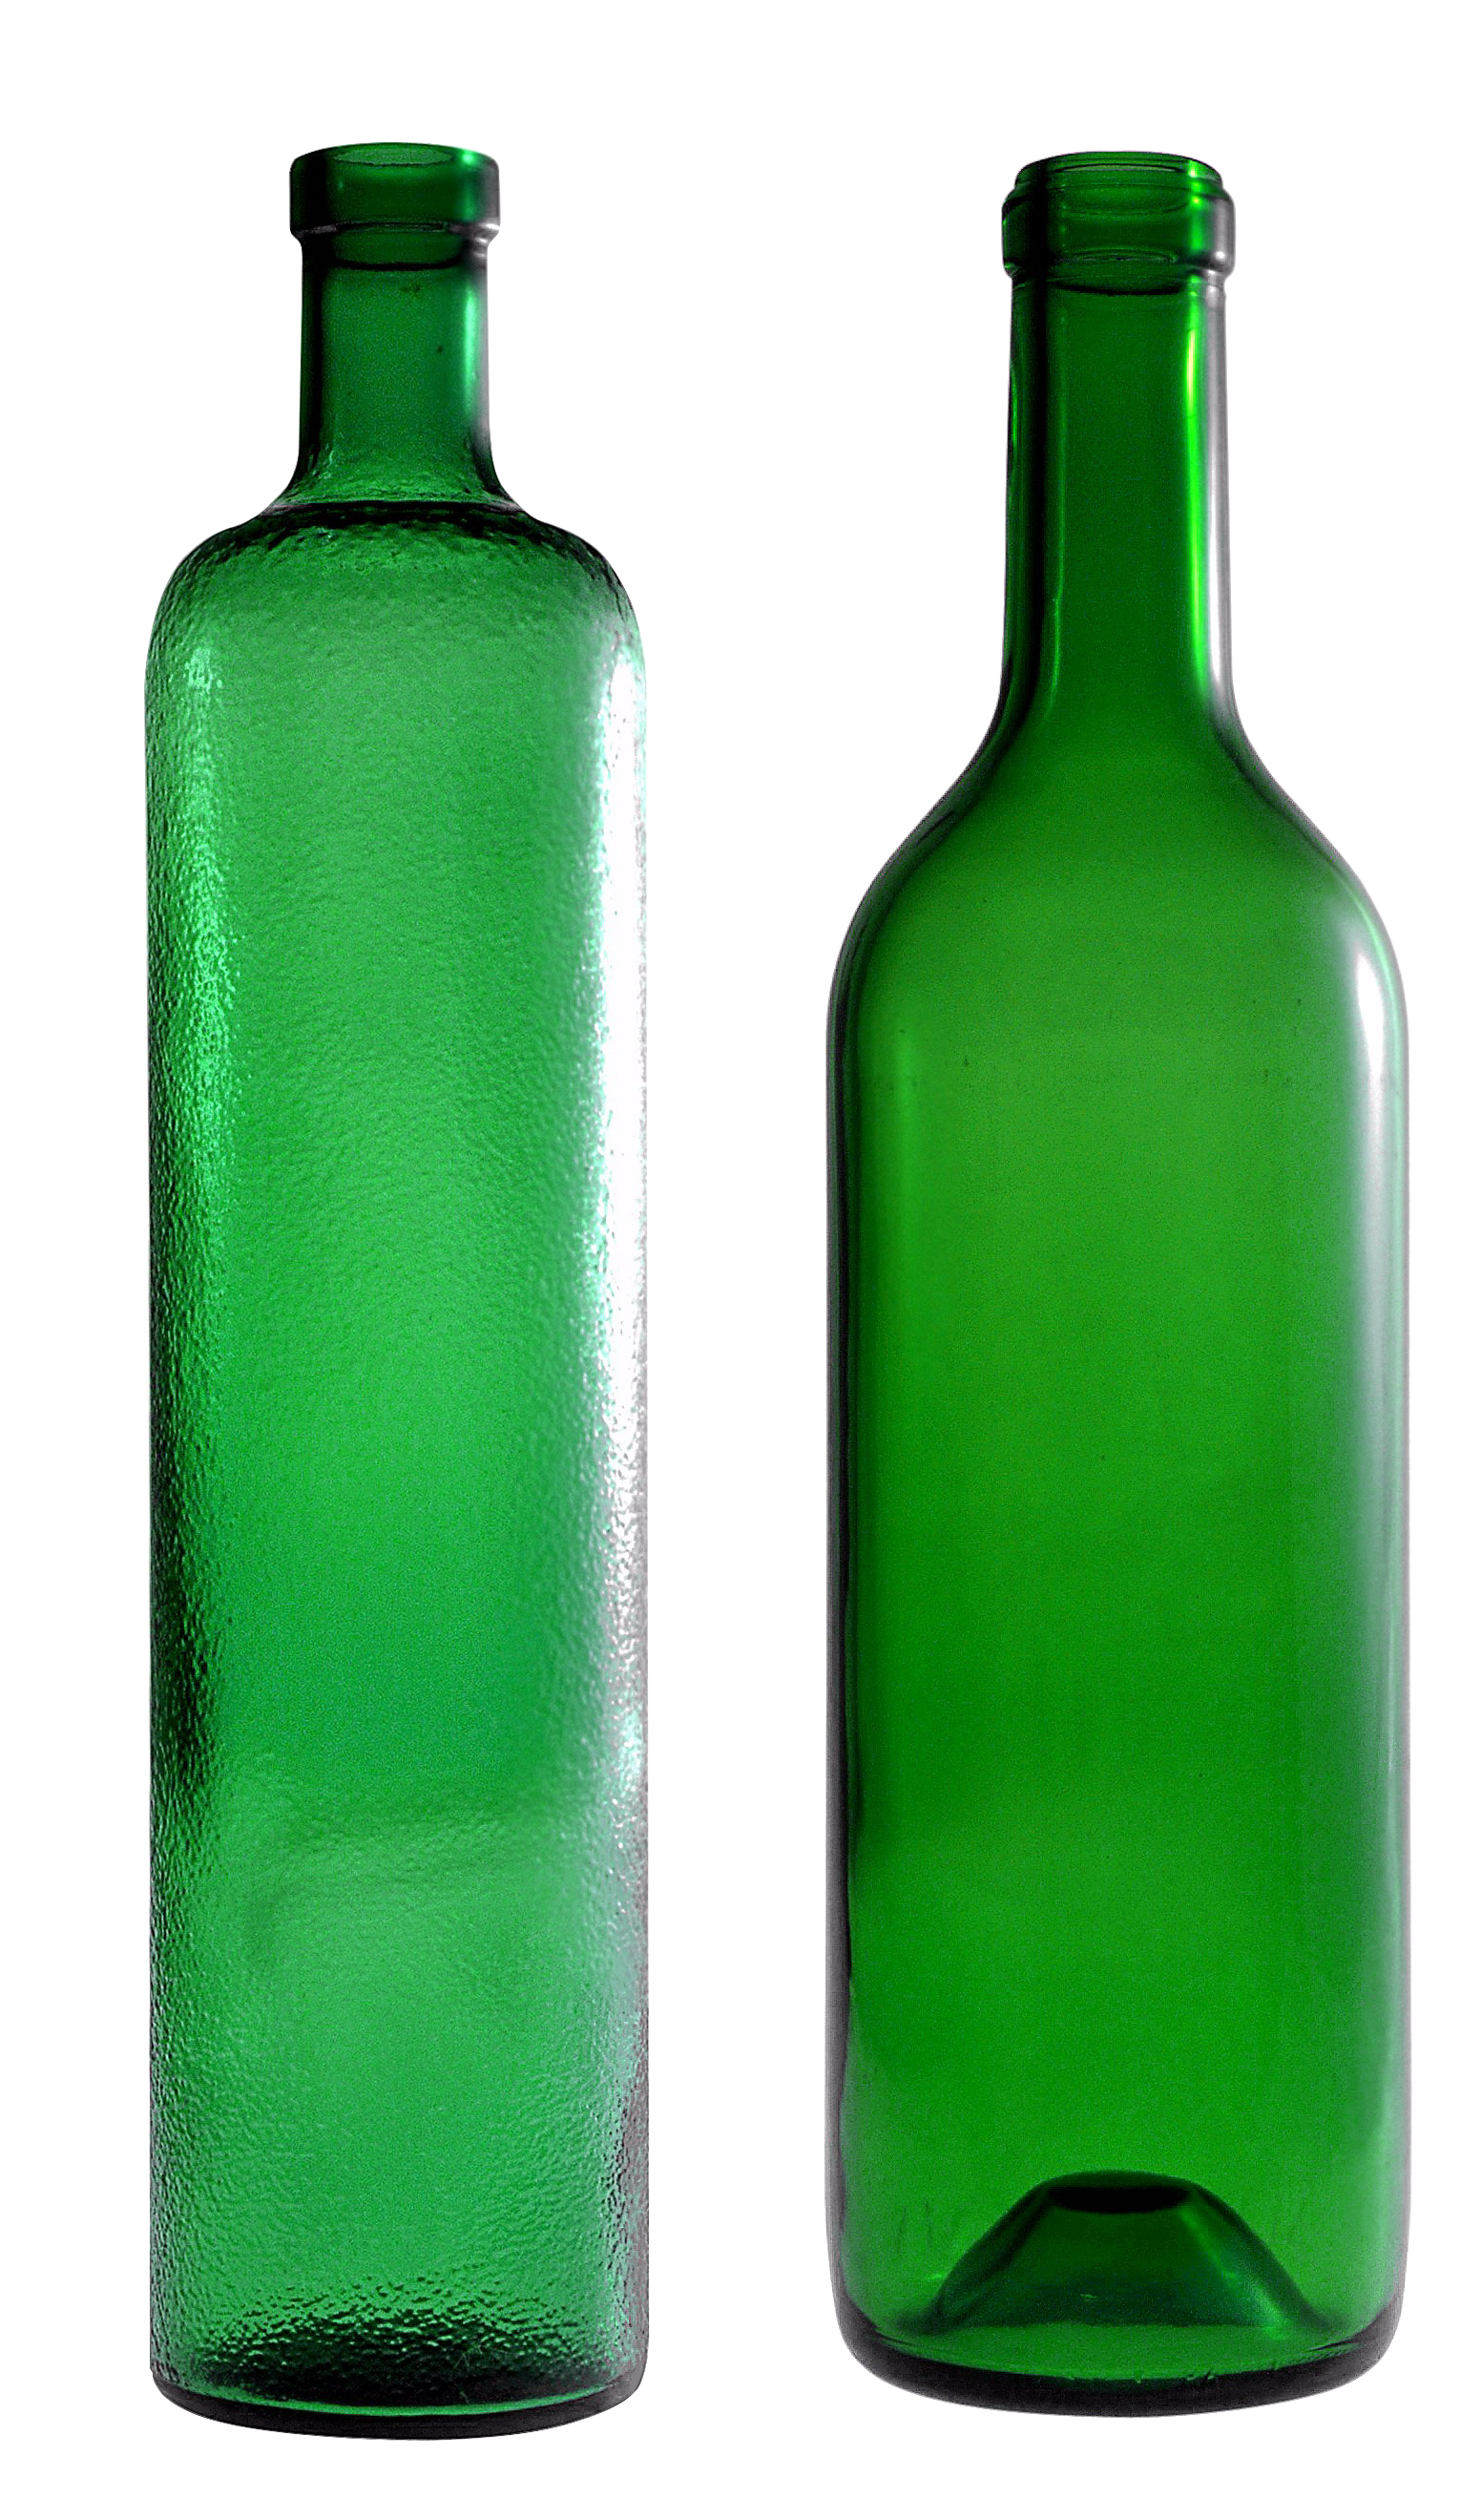 empty green glass bottle PNG image